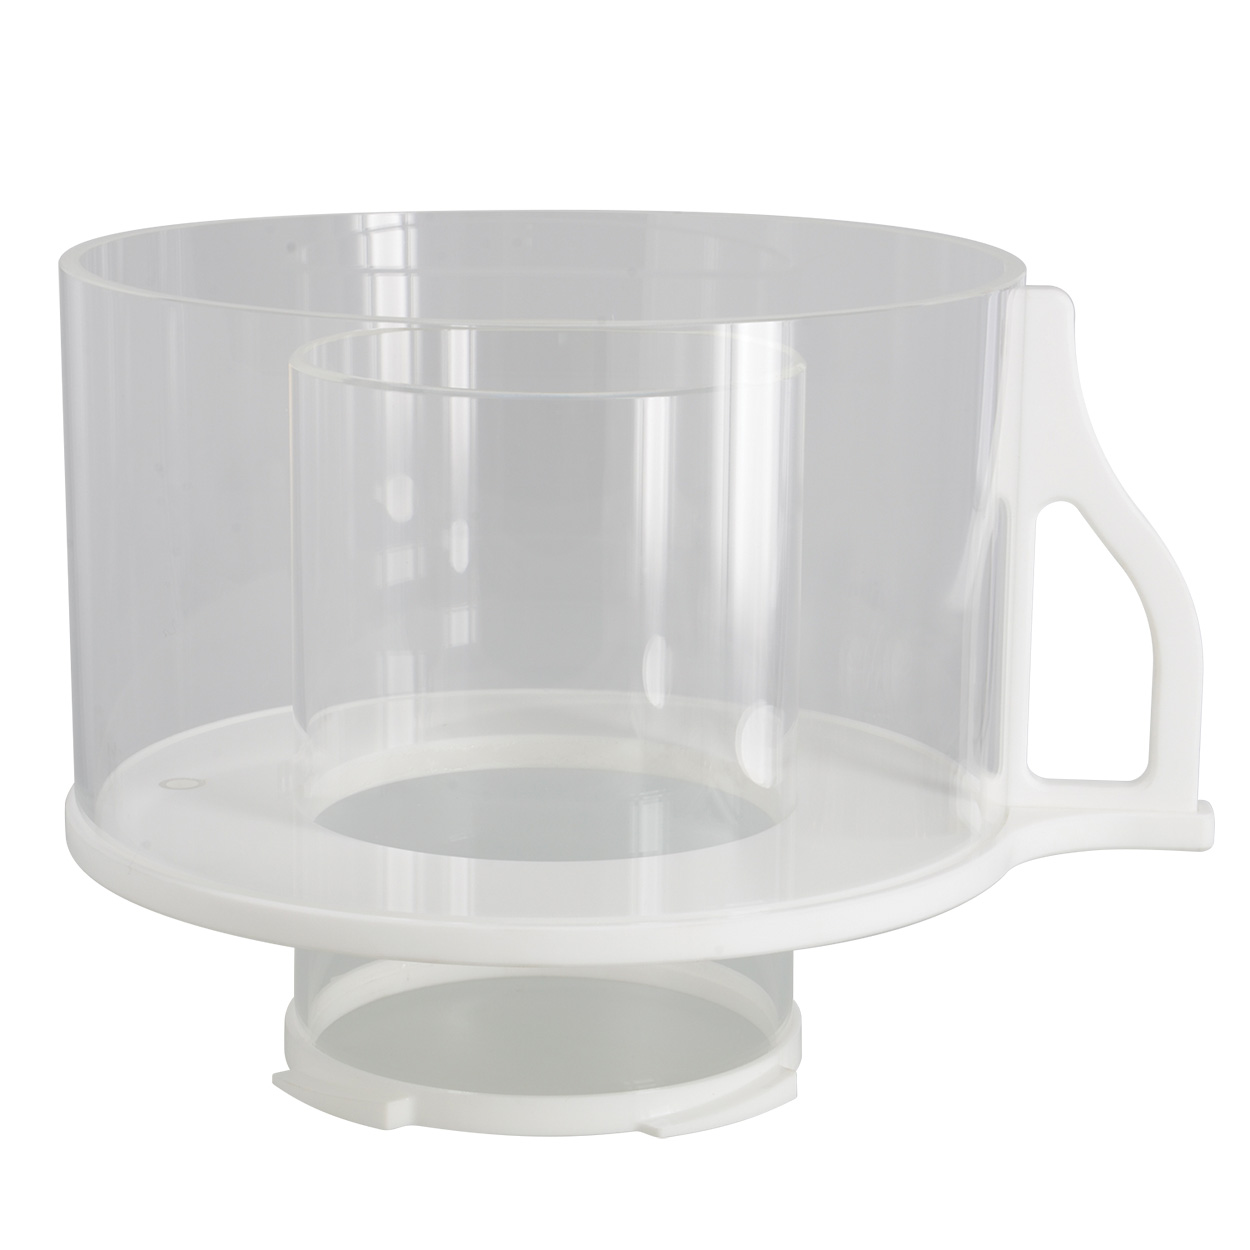 JNS Replacement Collection Cup for the CO-3 Protein Skimmer 38310